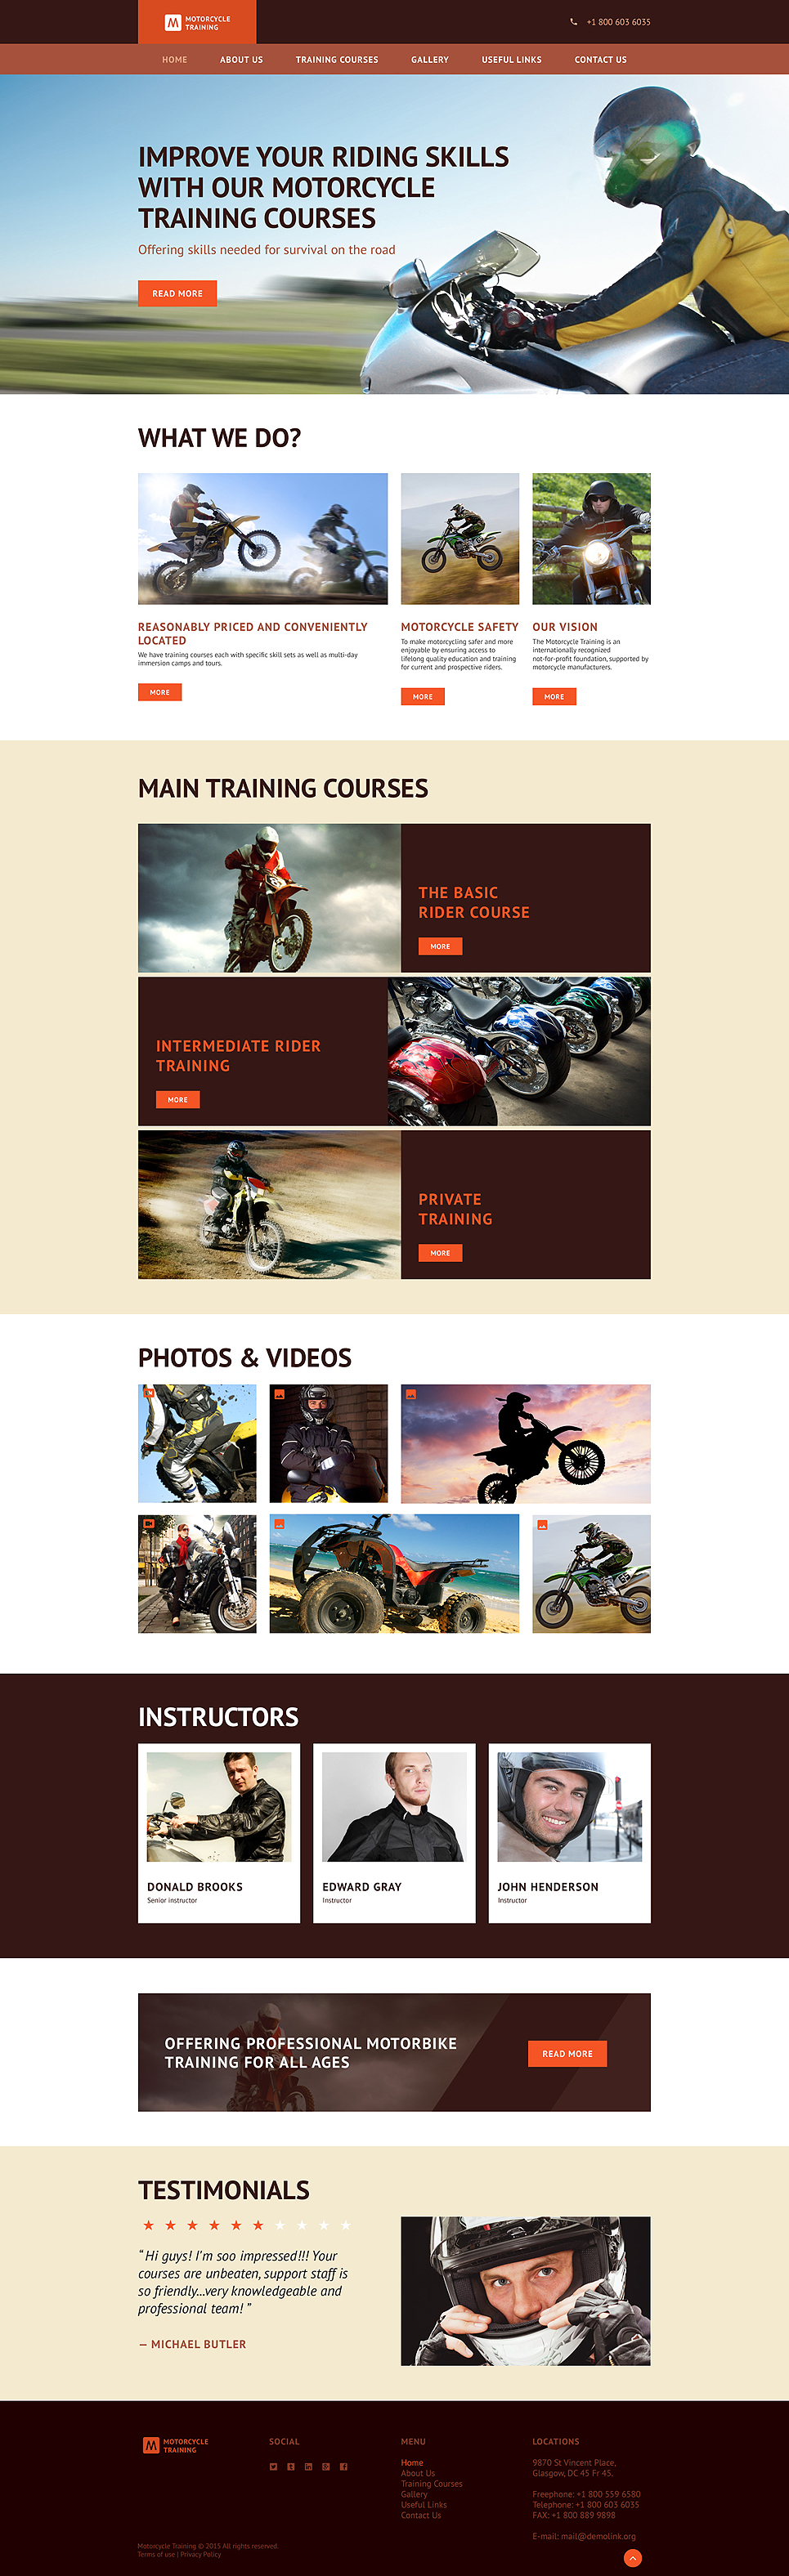 Motorcycle Training template illustration image